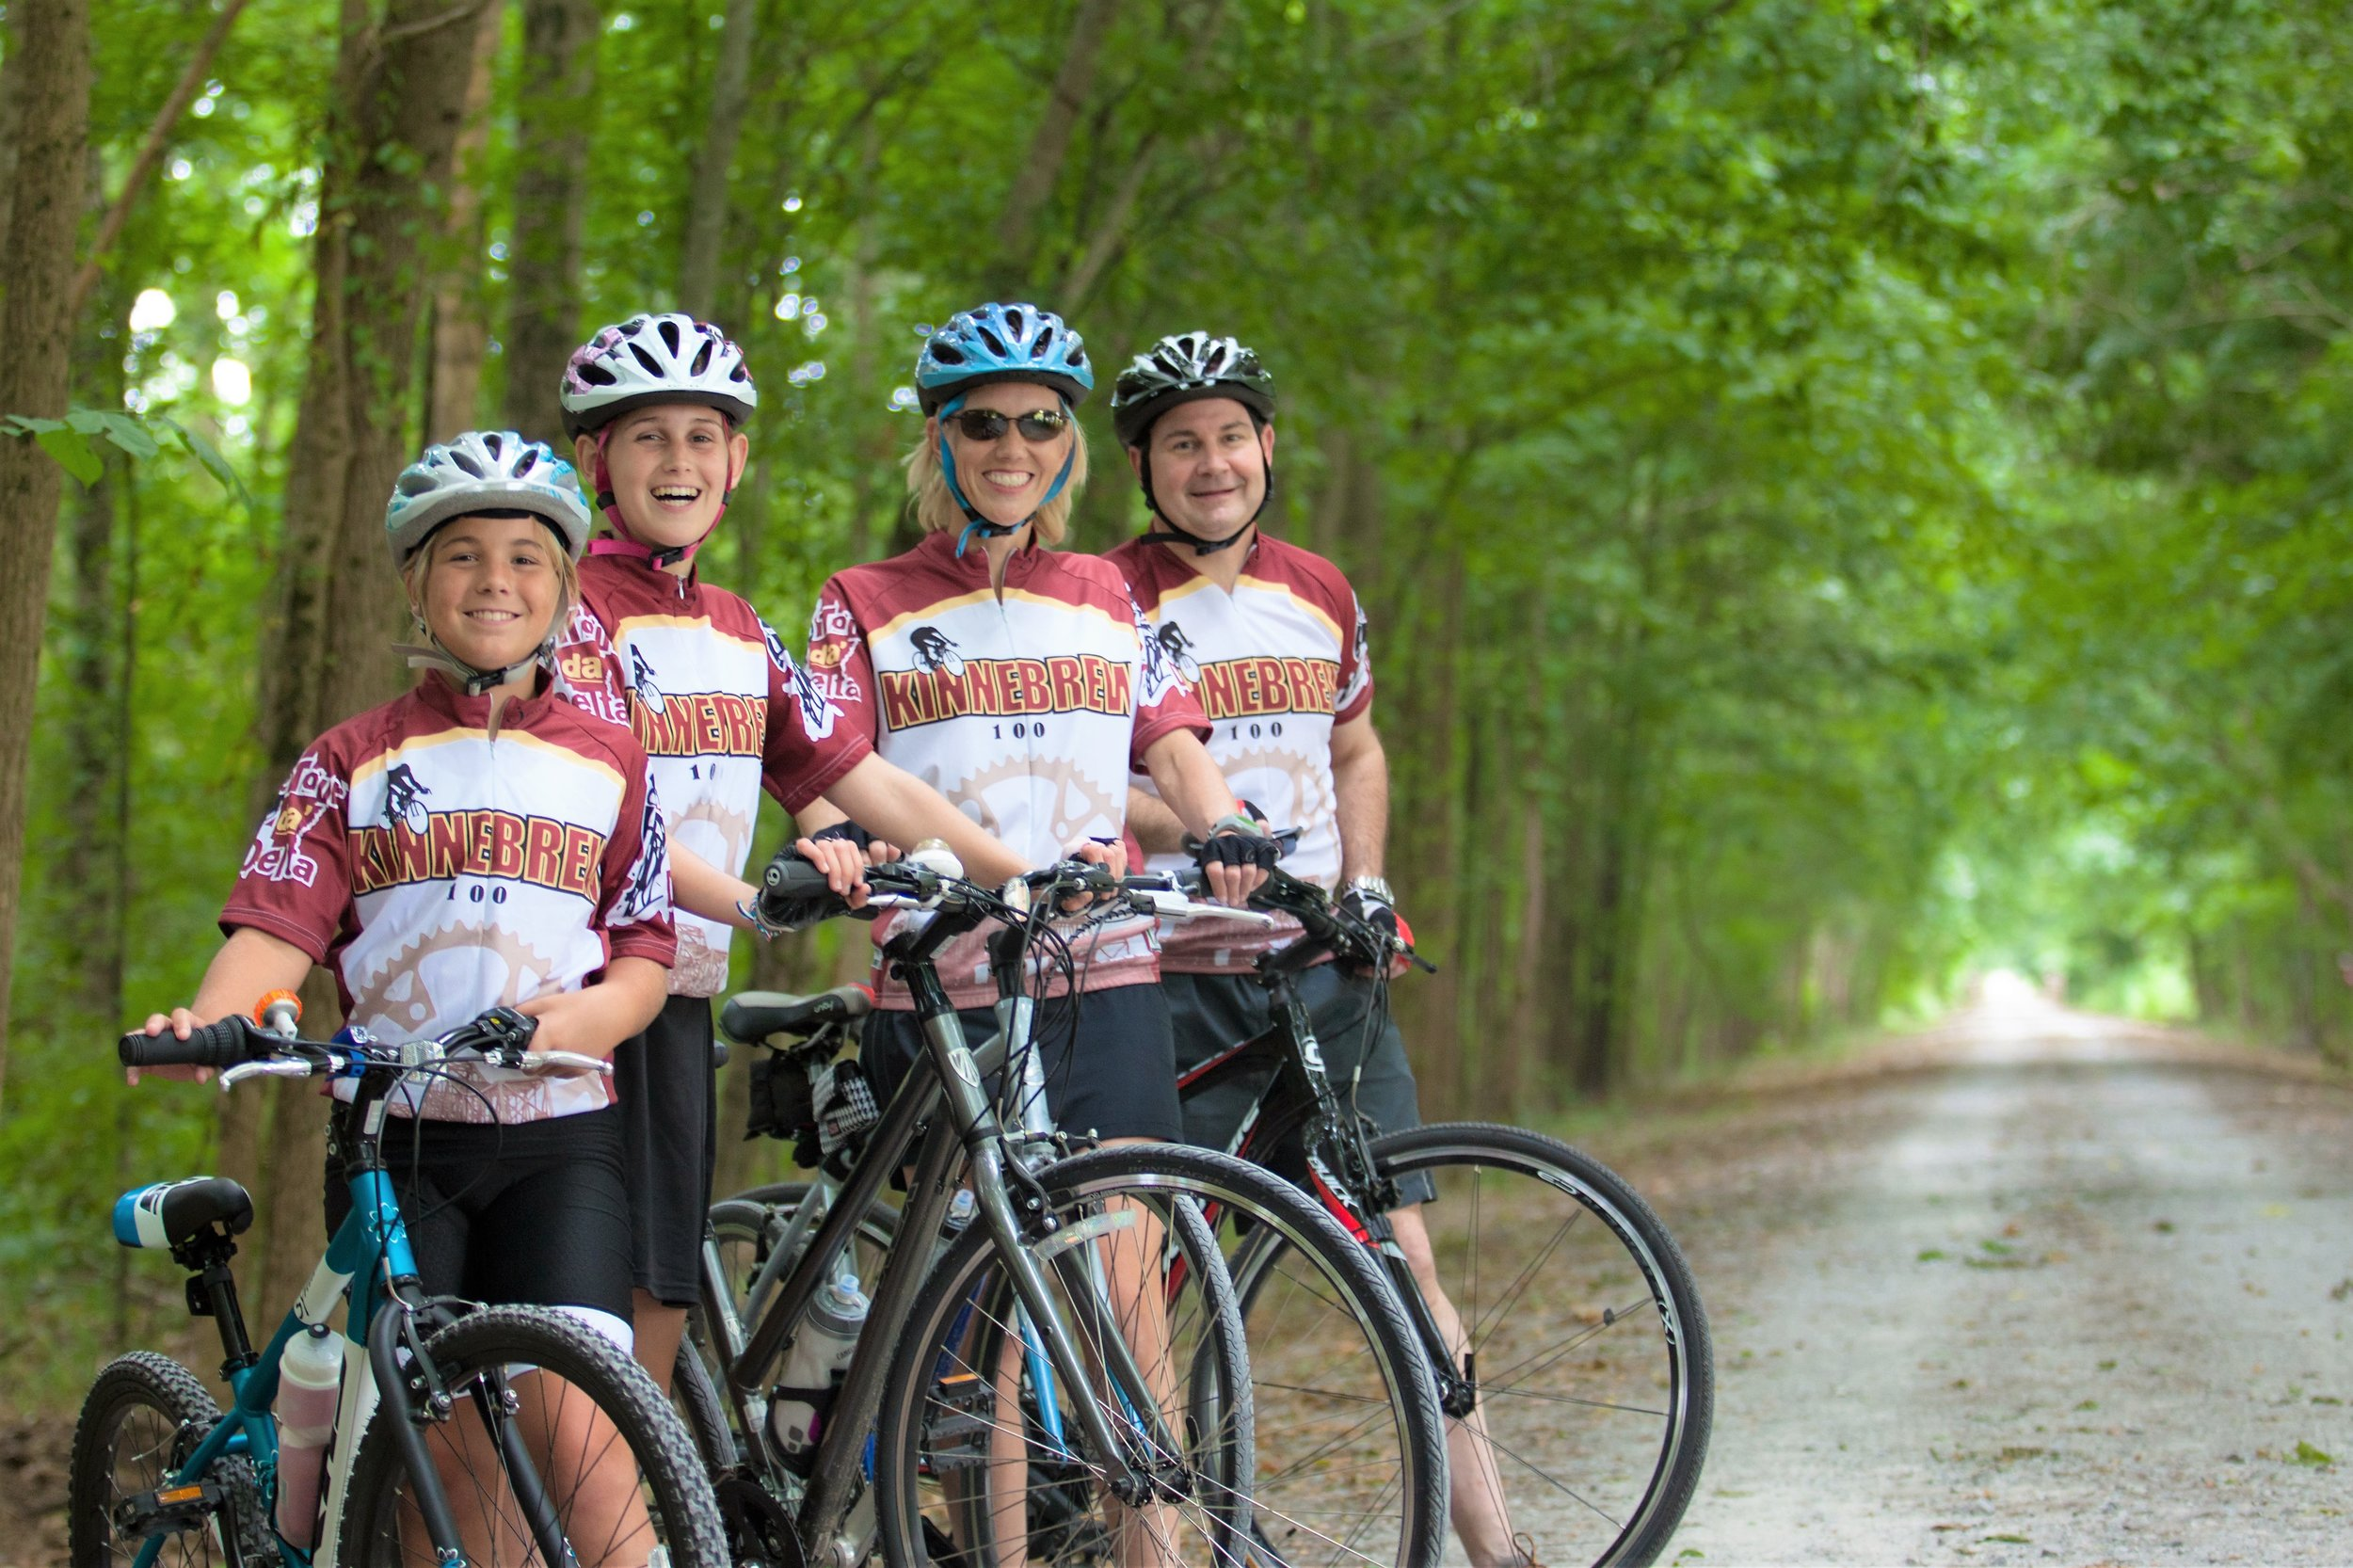 Phillips County offers numerous bike and walking trails to explore the Arkansas Delta's natural beauty.